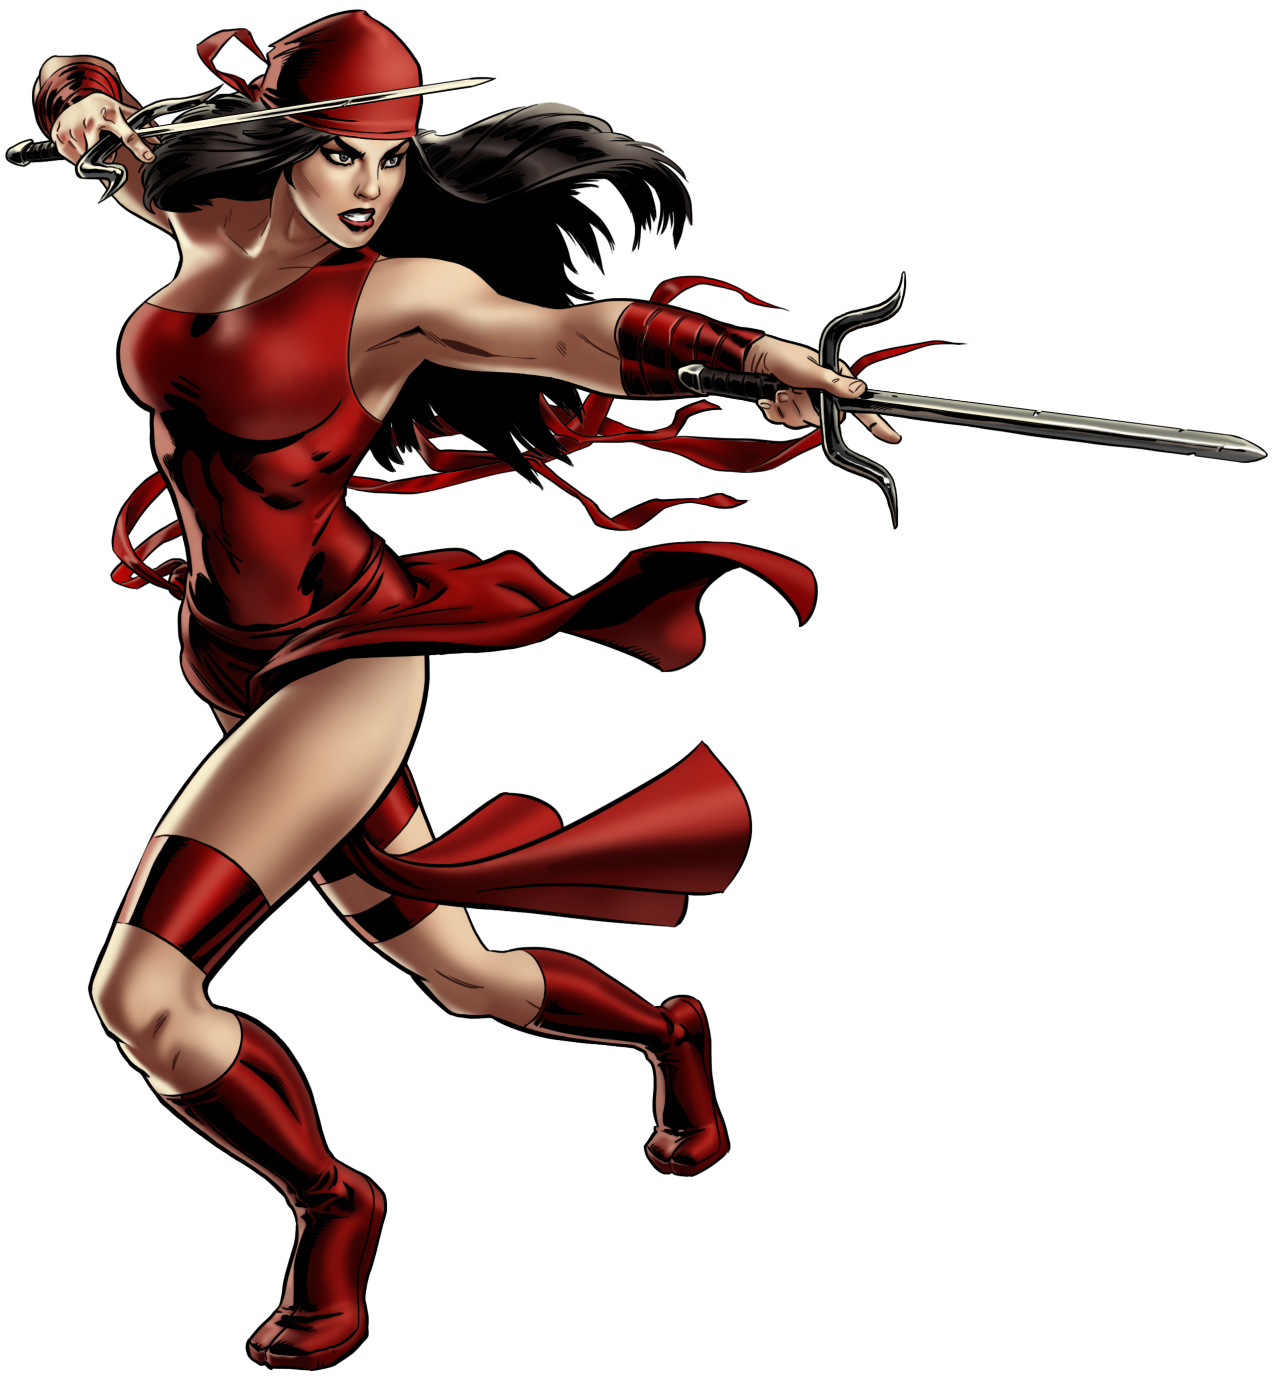 Drawing marvel elektra. Daily dose of avengers